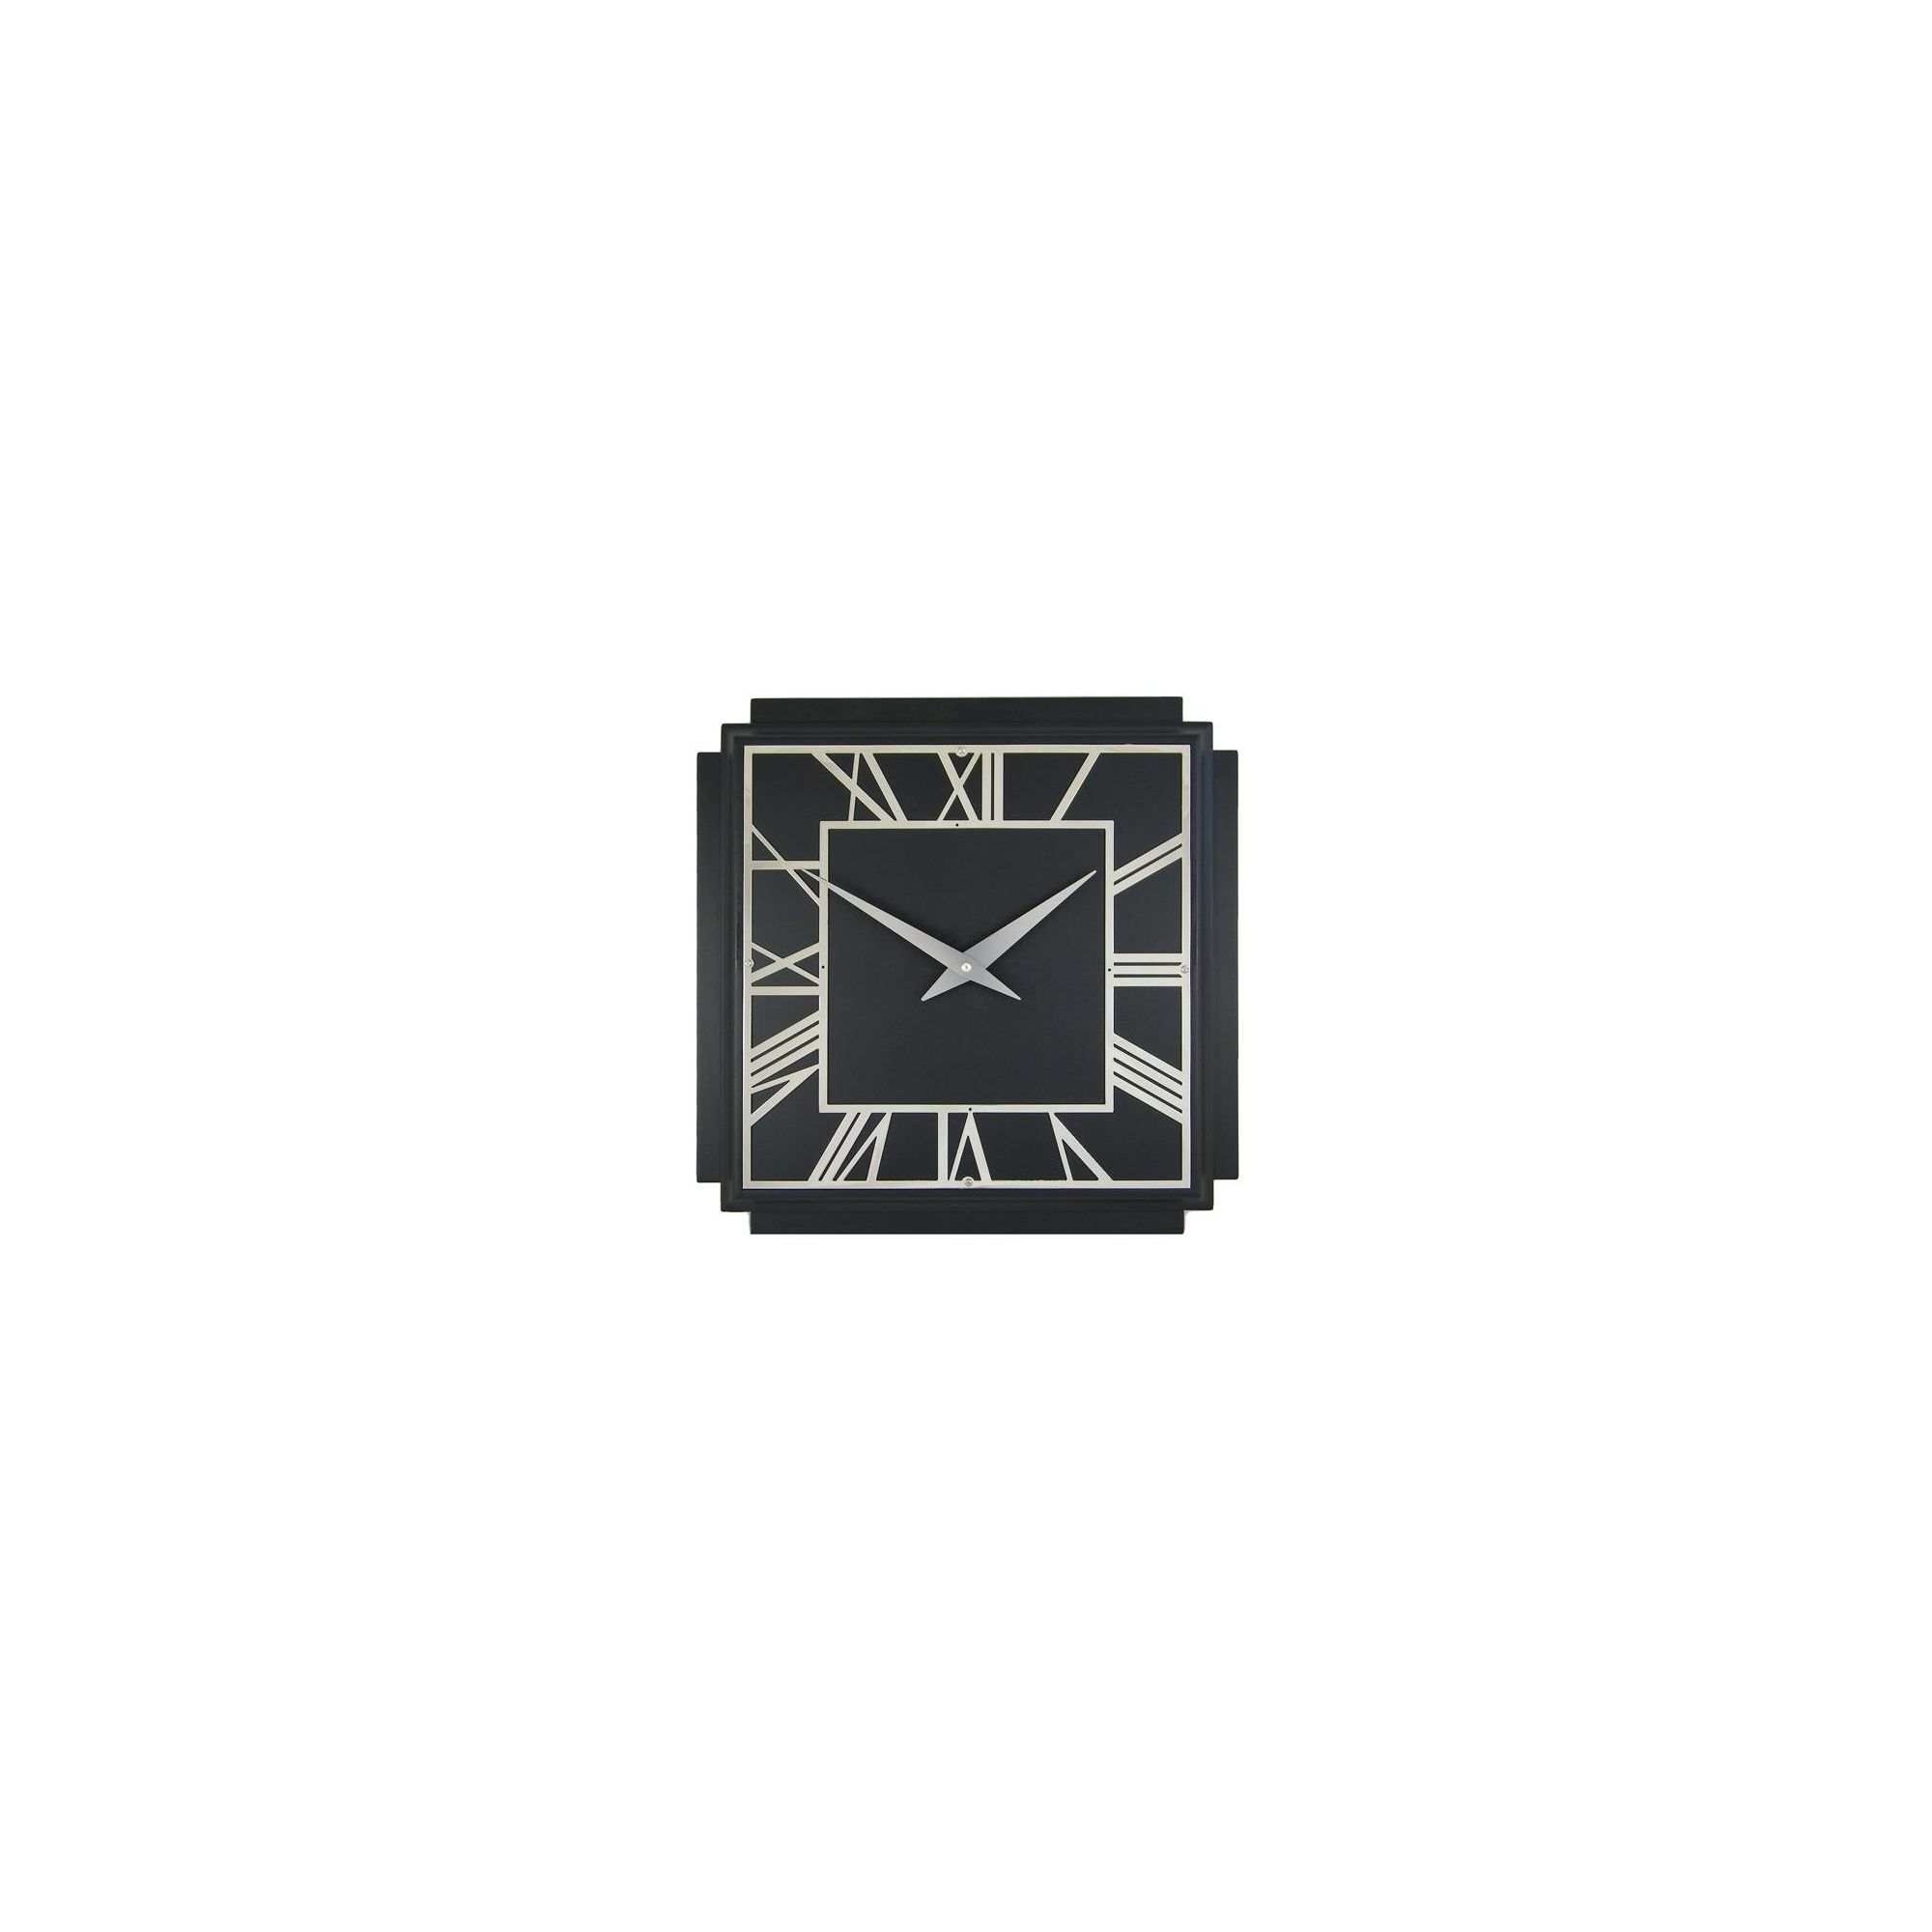 Lascelles wall clock gallery home wall decoration ideas tesco wall clocks image collections home wall decoration ideas lascelles wall clock images home wall decoration amipublicfo Image collections